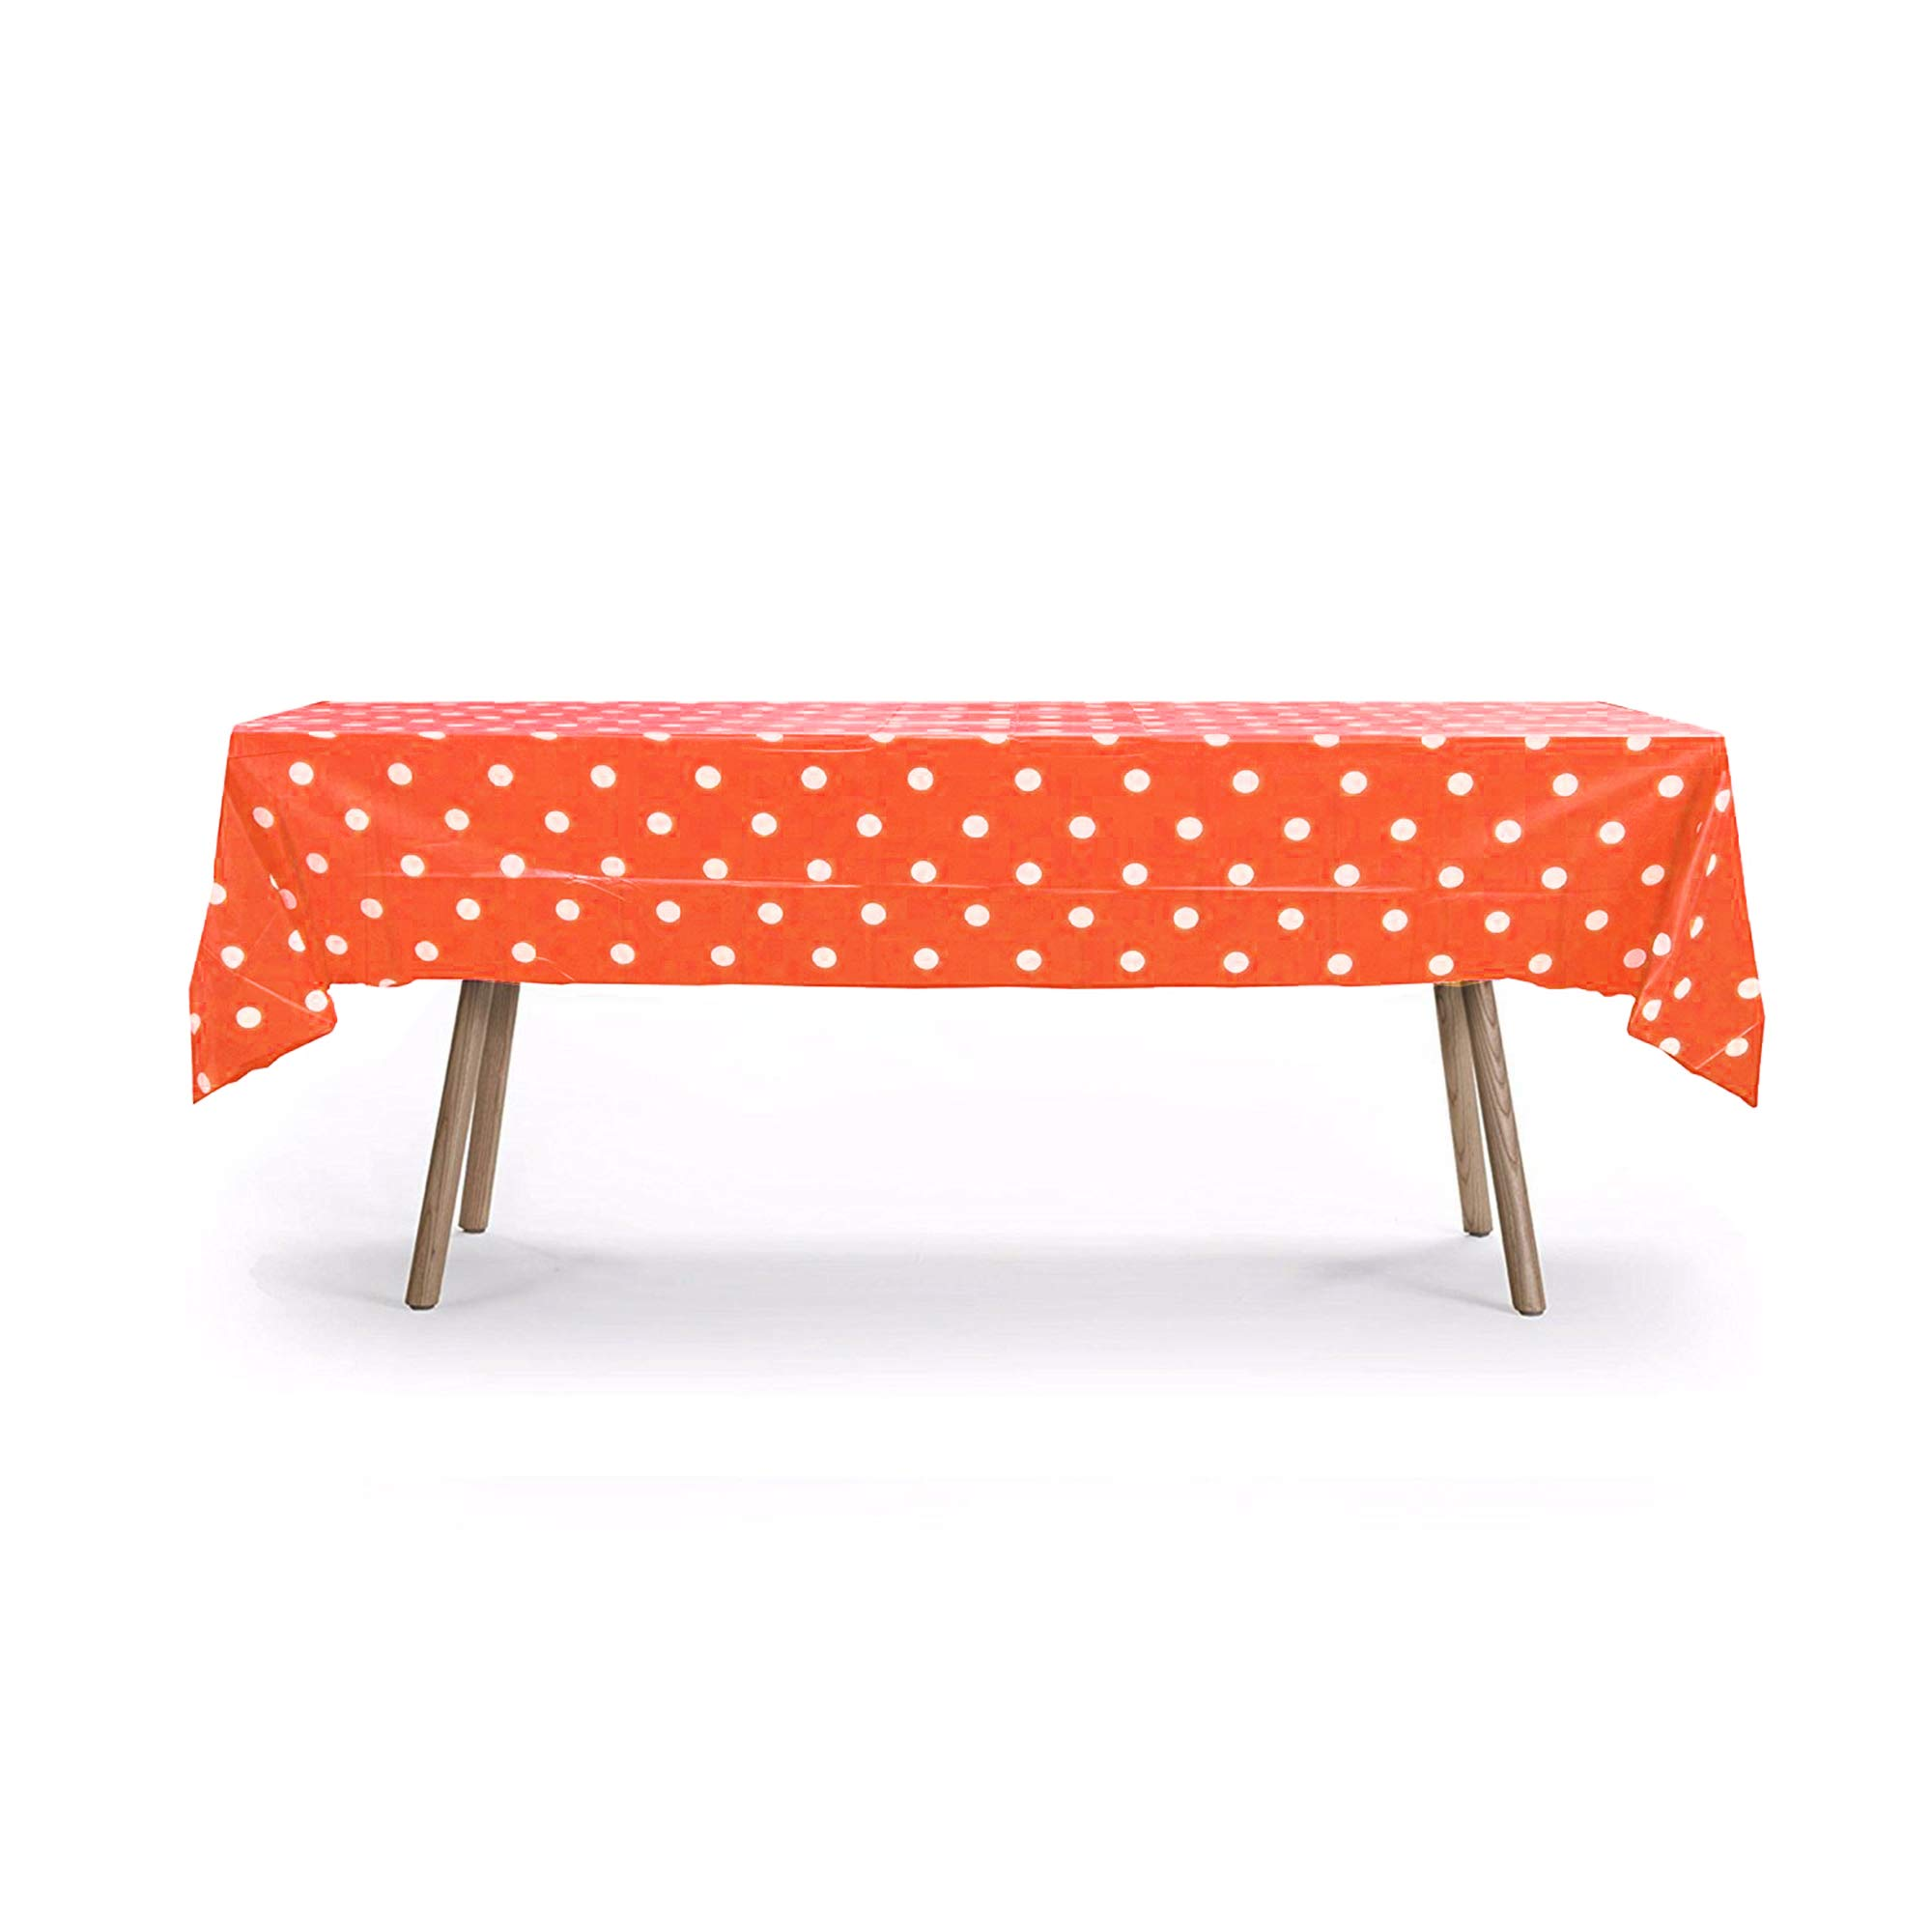 12 Packs of Polka Dot Table Cover, Plastic Rectangular Pool Patio Party Disposal Table Cover (Orange) by Gift Expressions